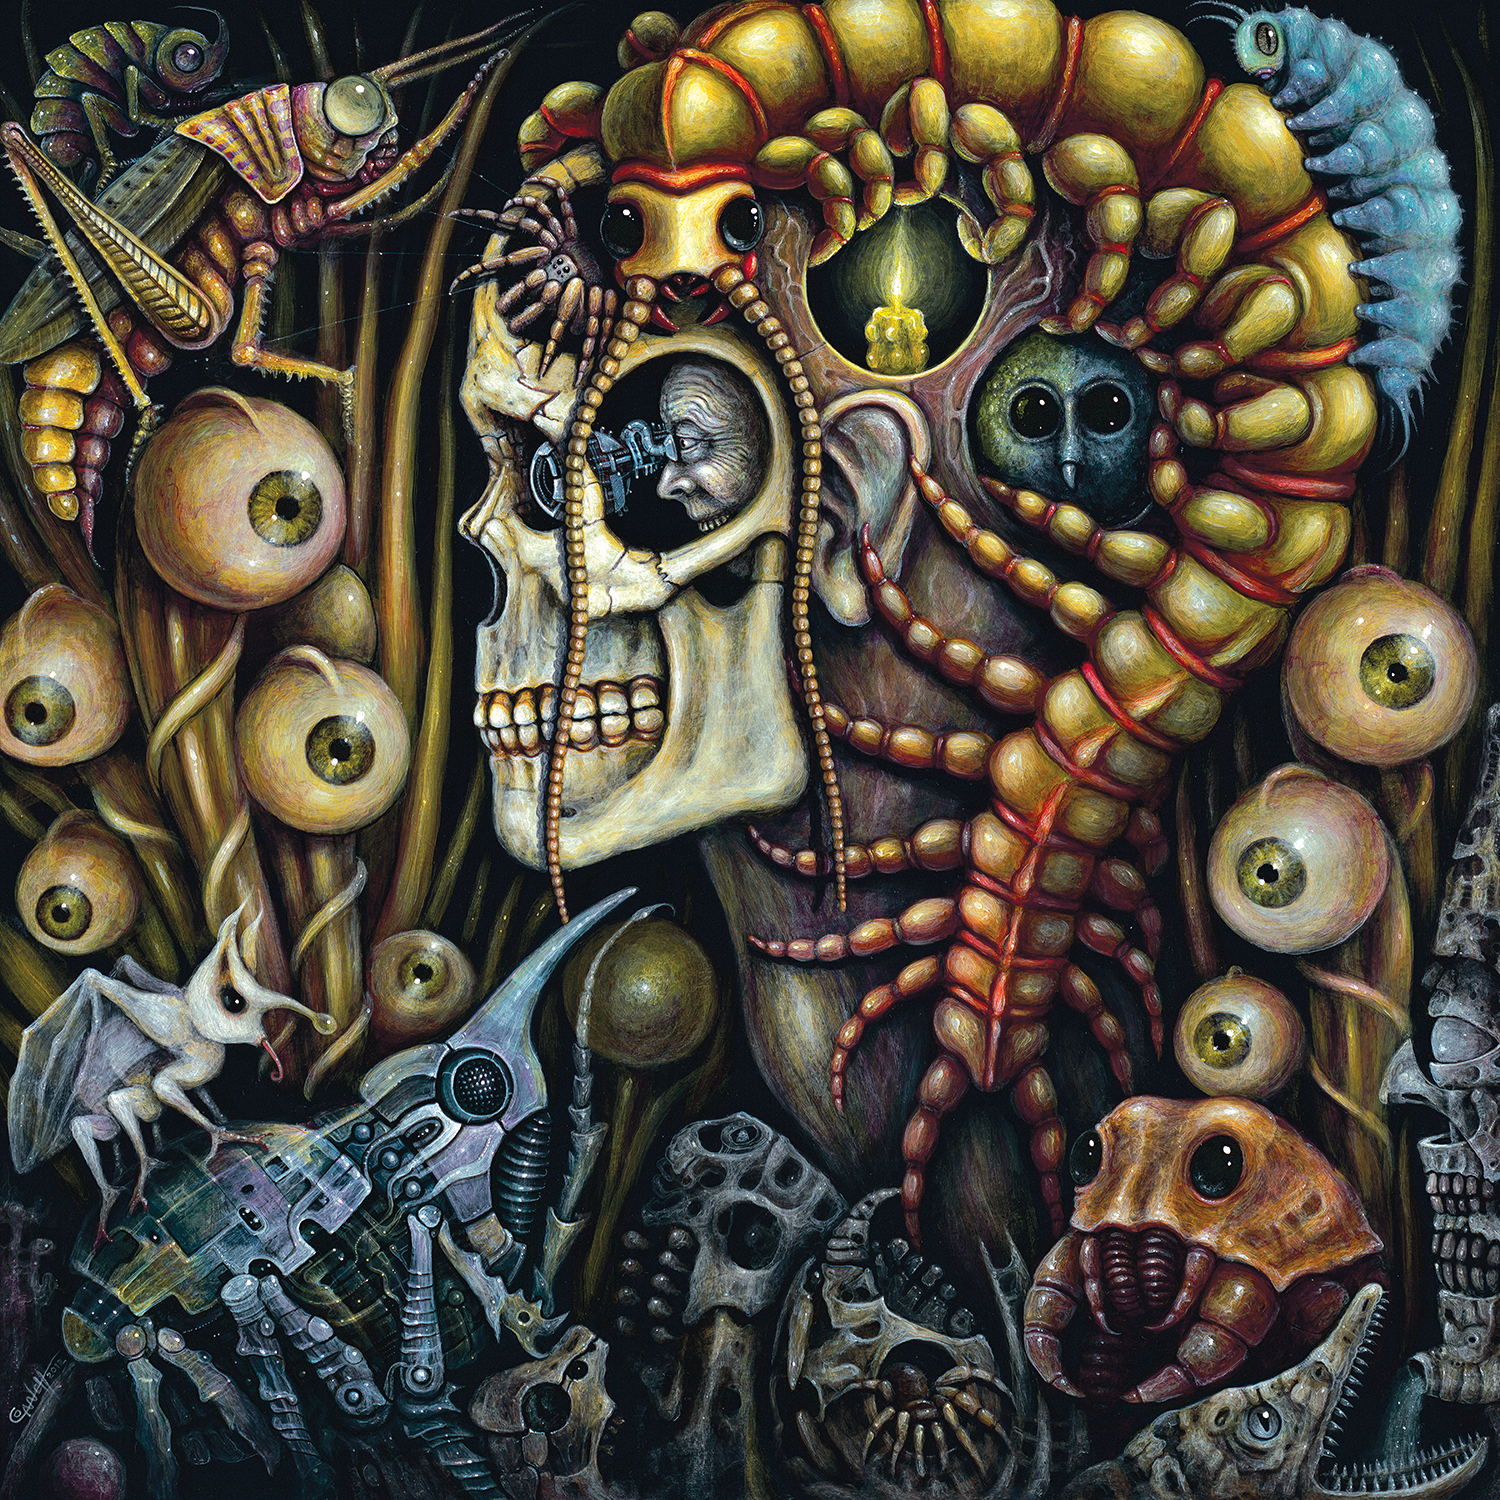 Profile of a skeleton with man inside peeking through eye socket surrounded by insects, machinery, and eyeballs